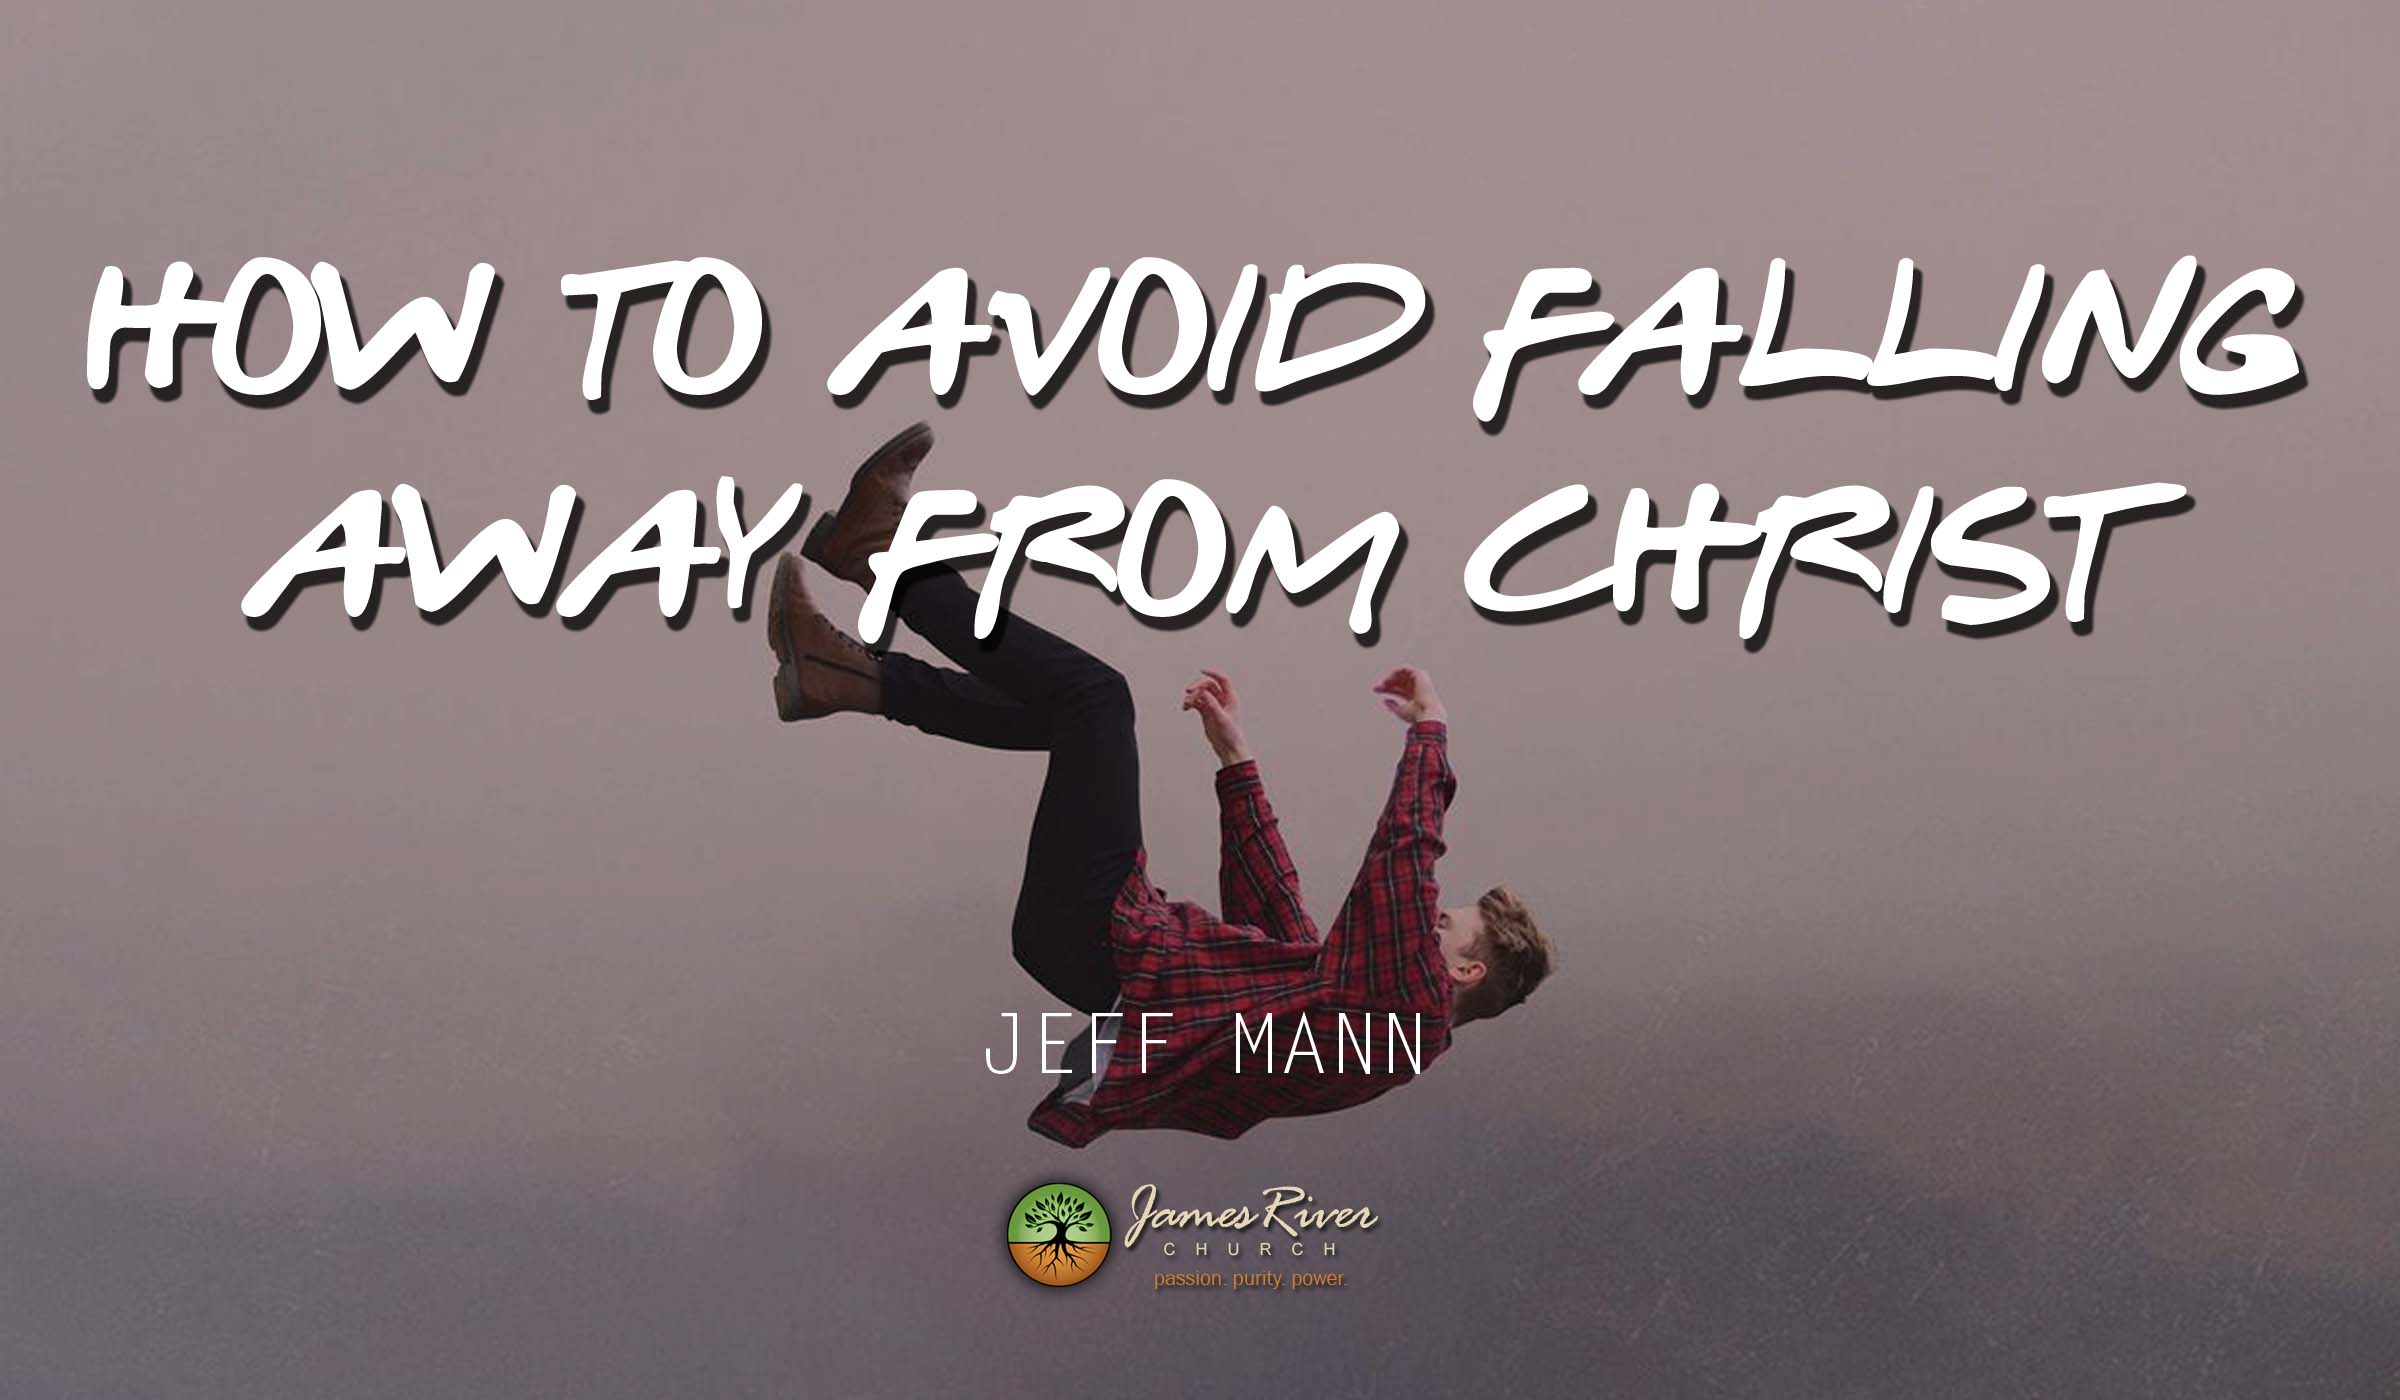 How to Avoid Falling Away from Christ